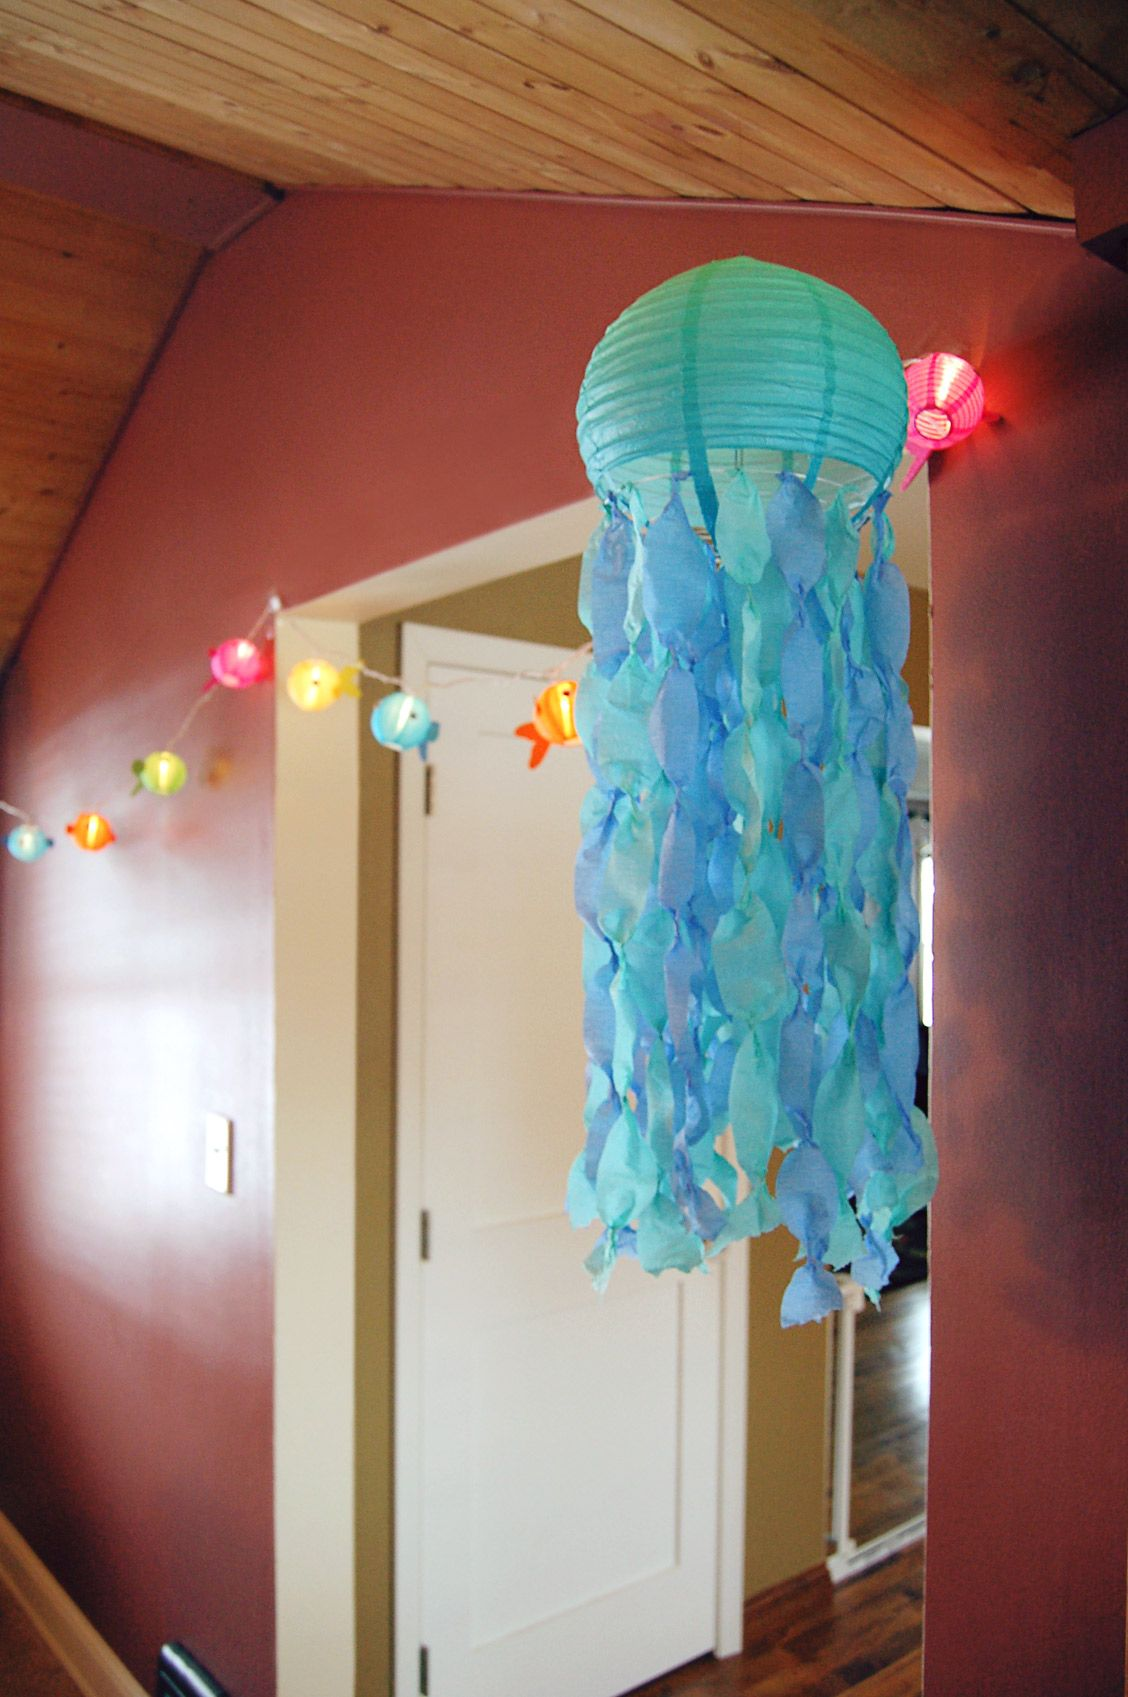 Paper Lantern Jelly Fish   Tie Crape Streamer On The Wire, And Pinch And  Twist Roll For 3 Jelly Fish